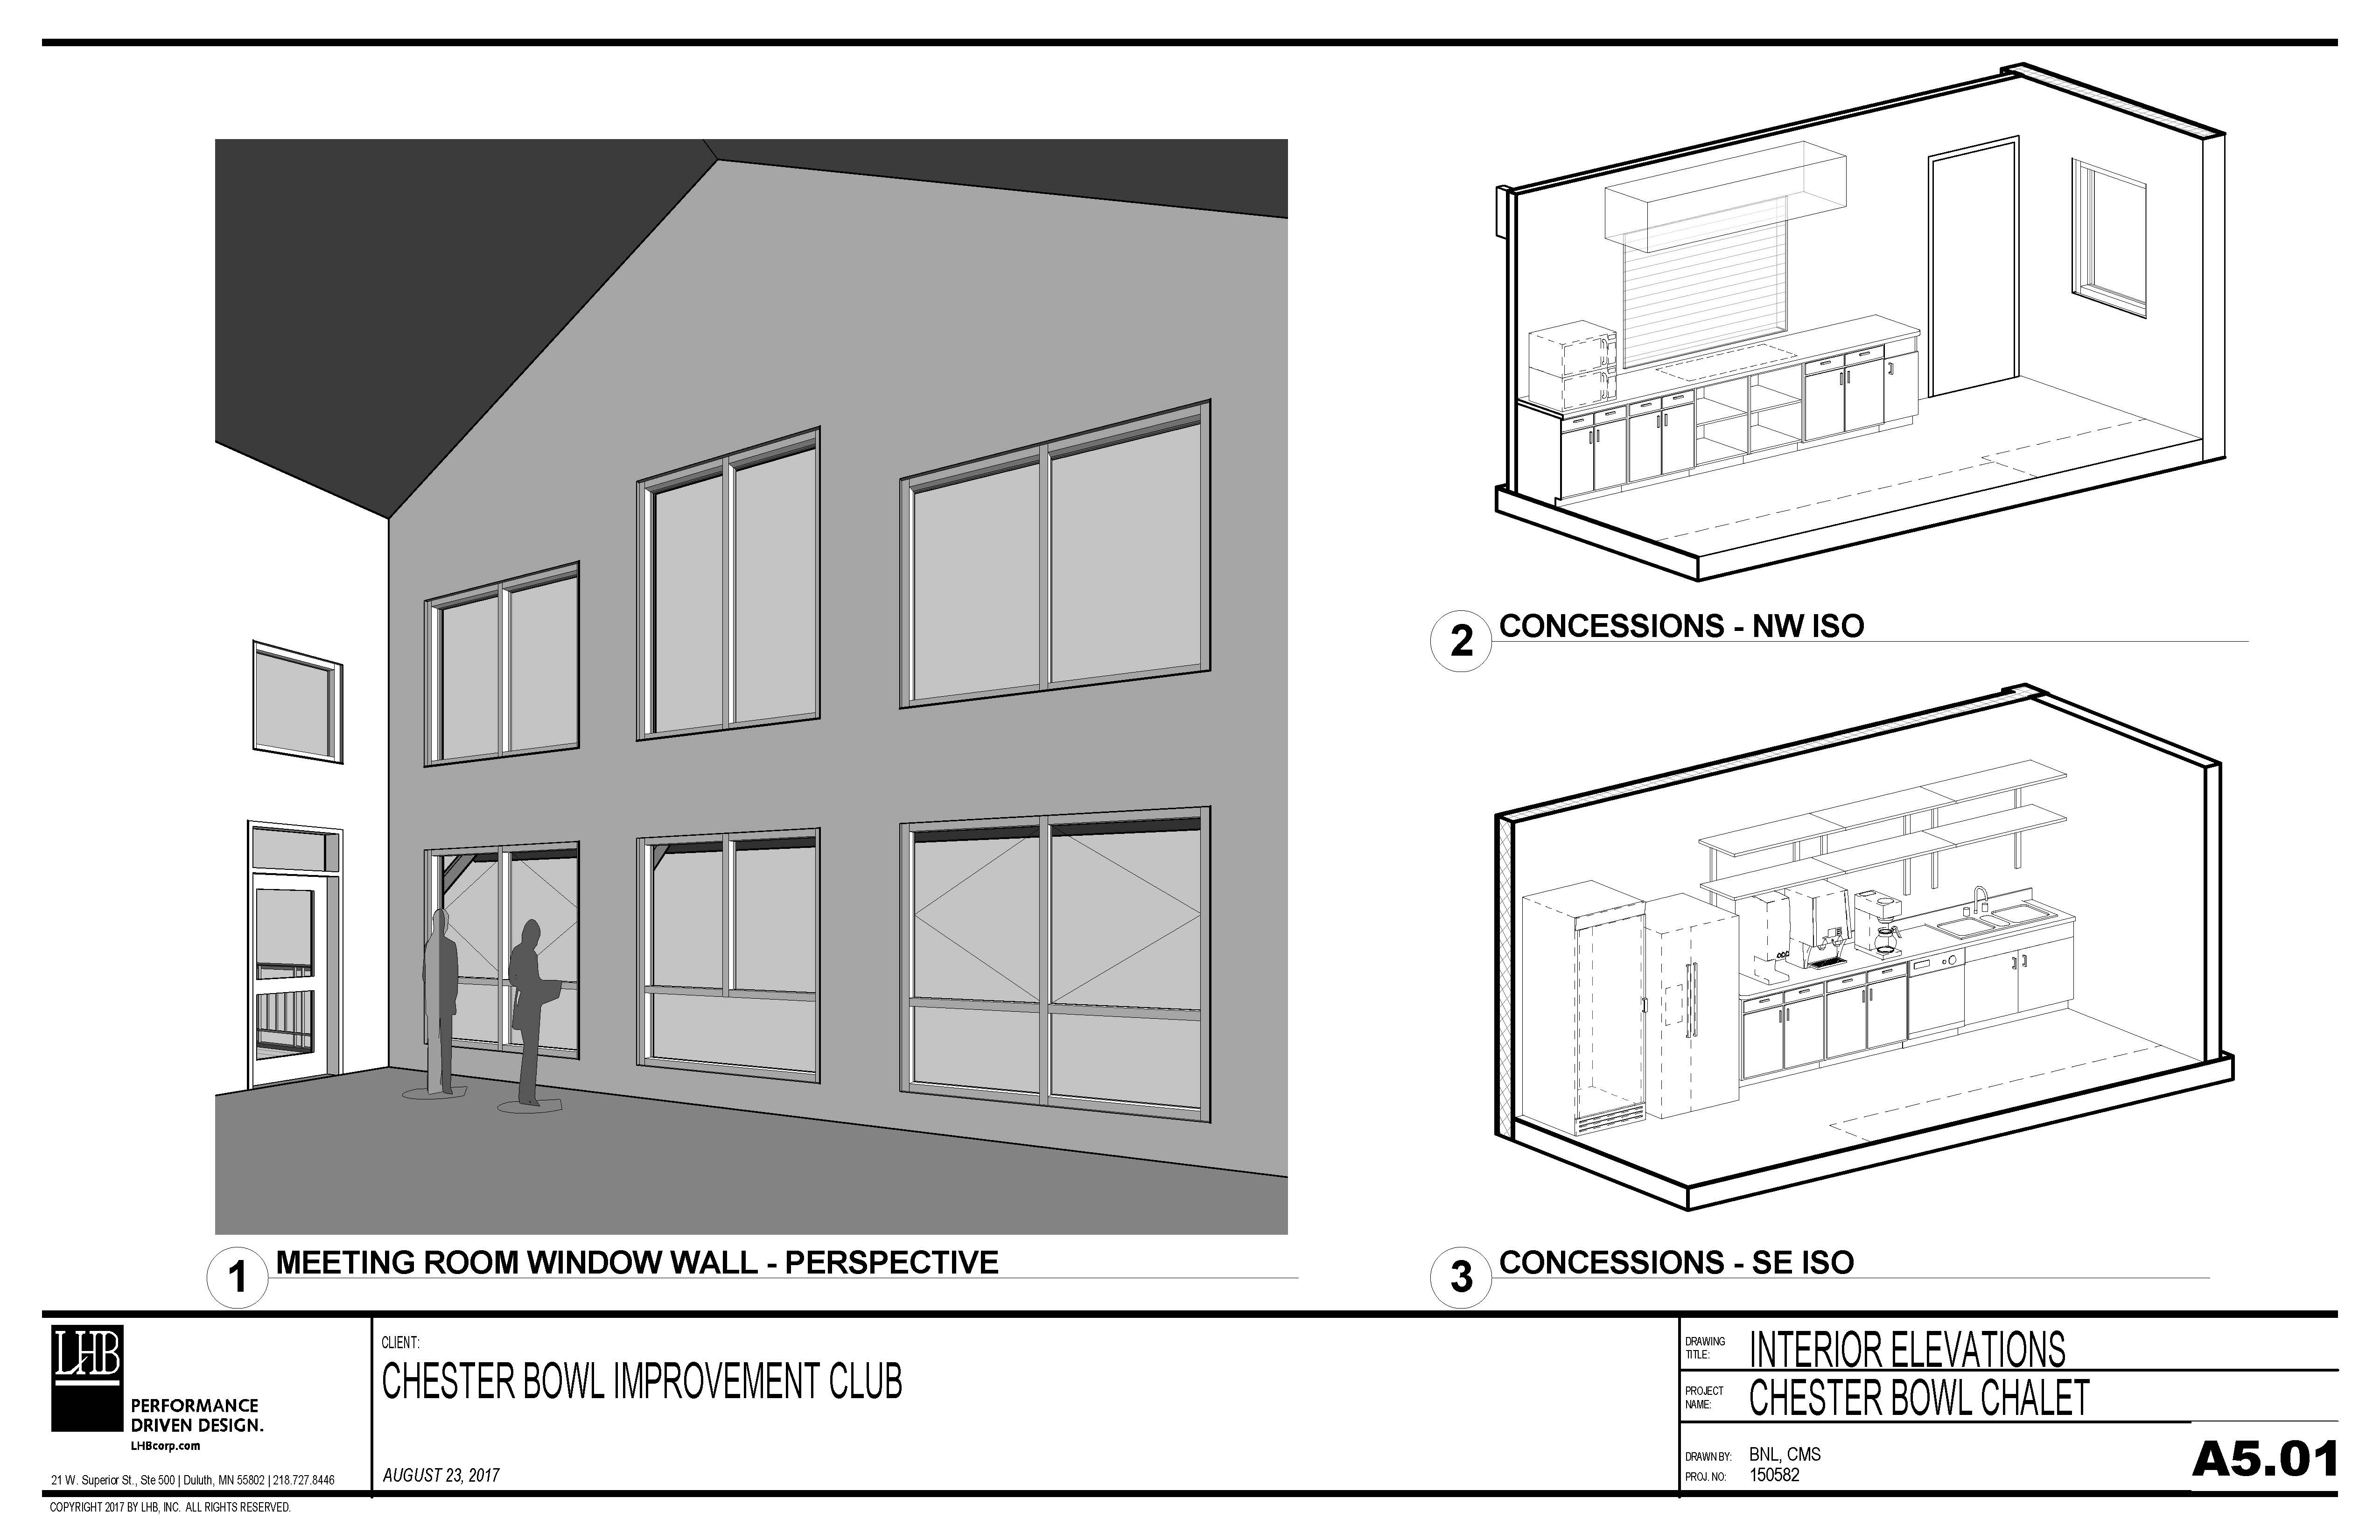 Draft plans for the main level and concessions at the Thom Storm Chalet.